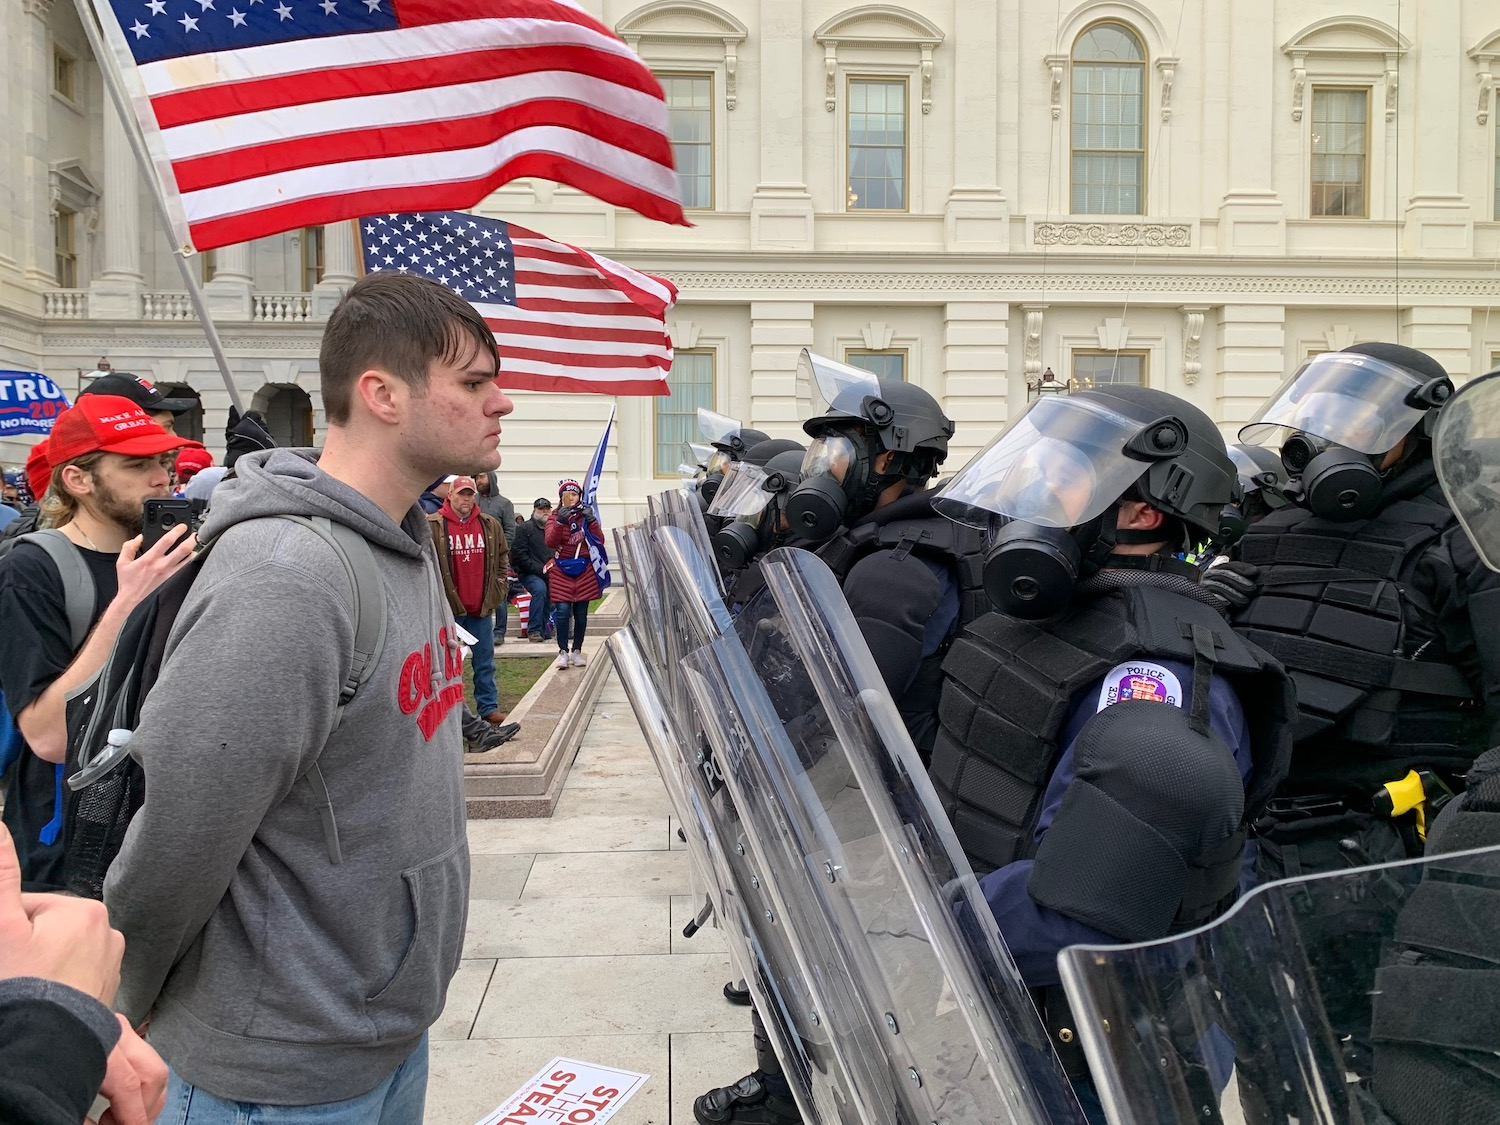 A participant in the pro-Trump mob faces off with heavily armed officers (image by Bucky Turco, used with permission)